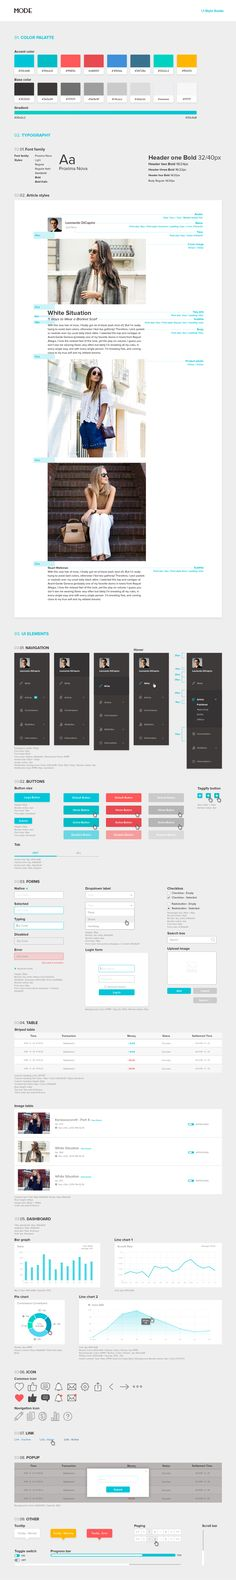 Mode web style guide 01